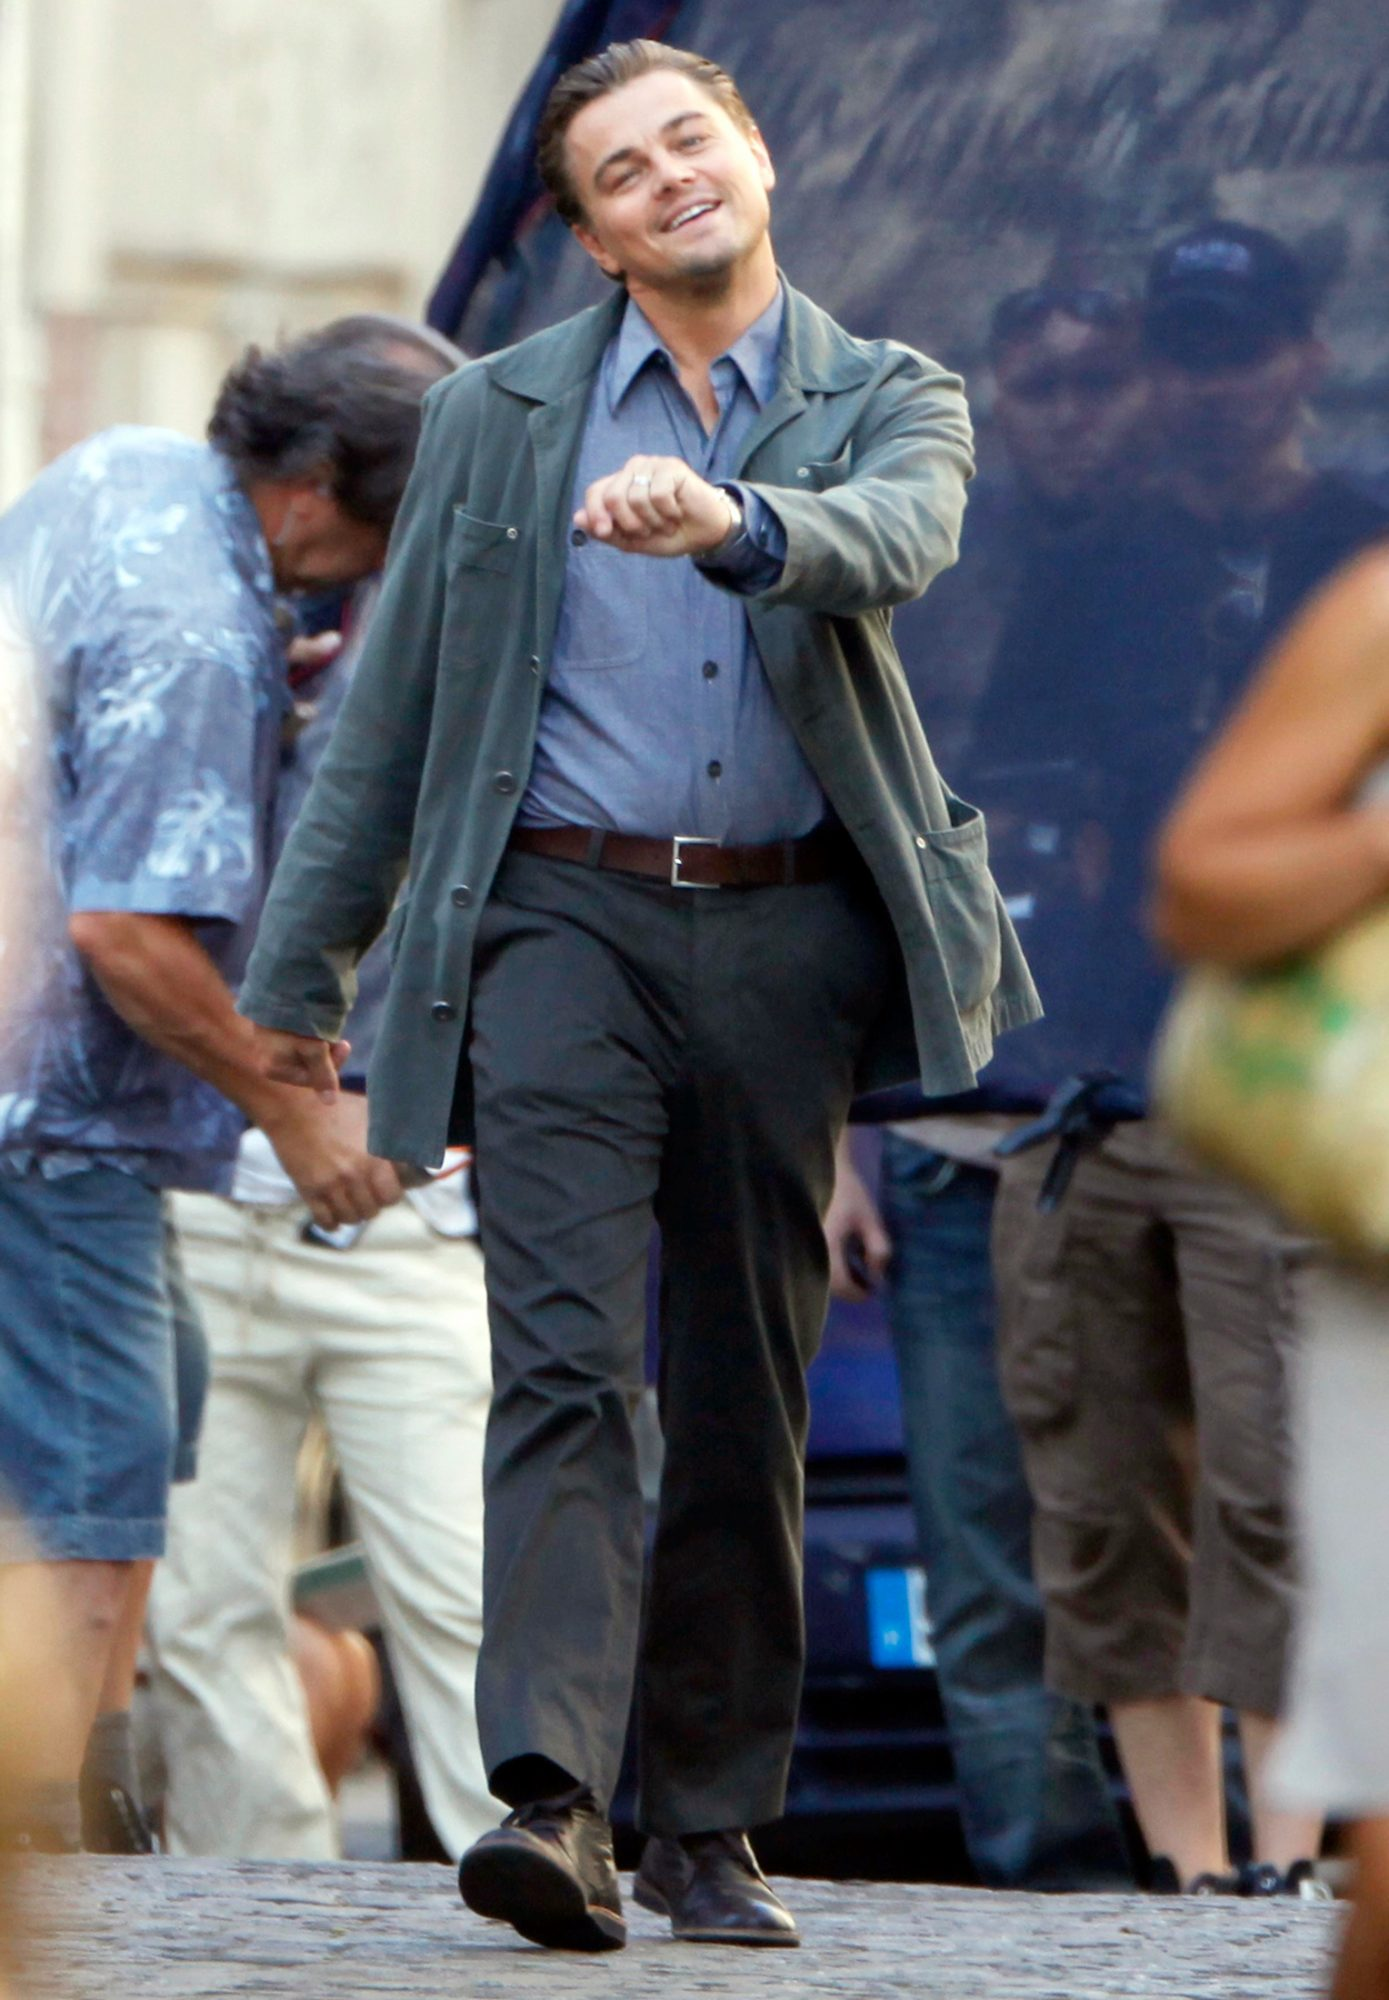 And walks like this in real life.